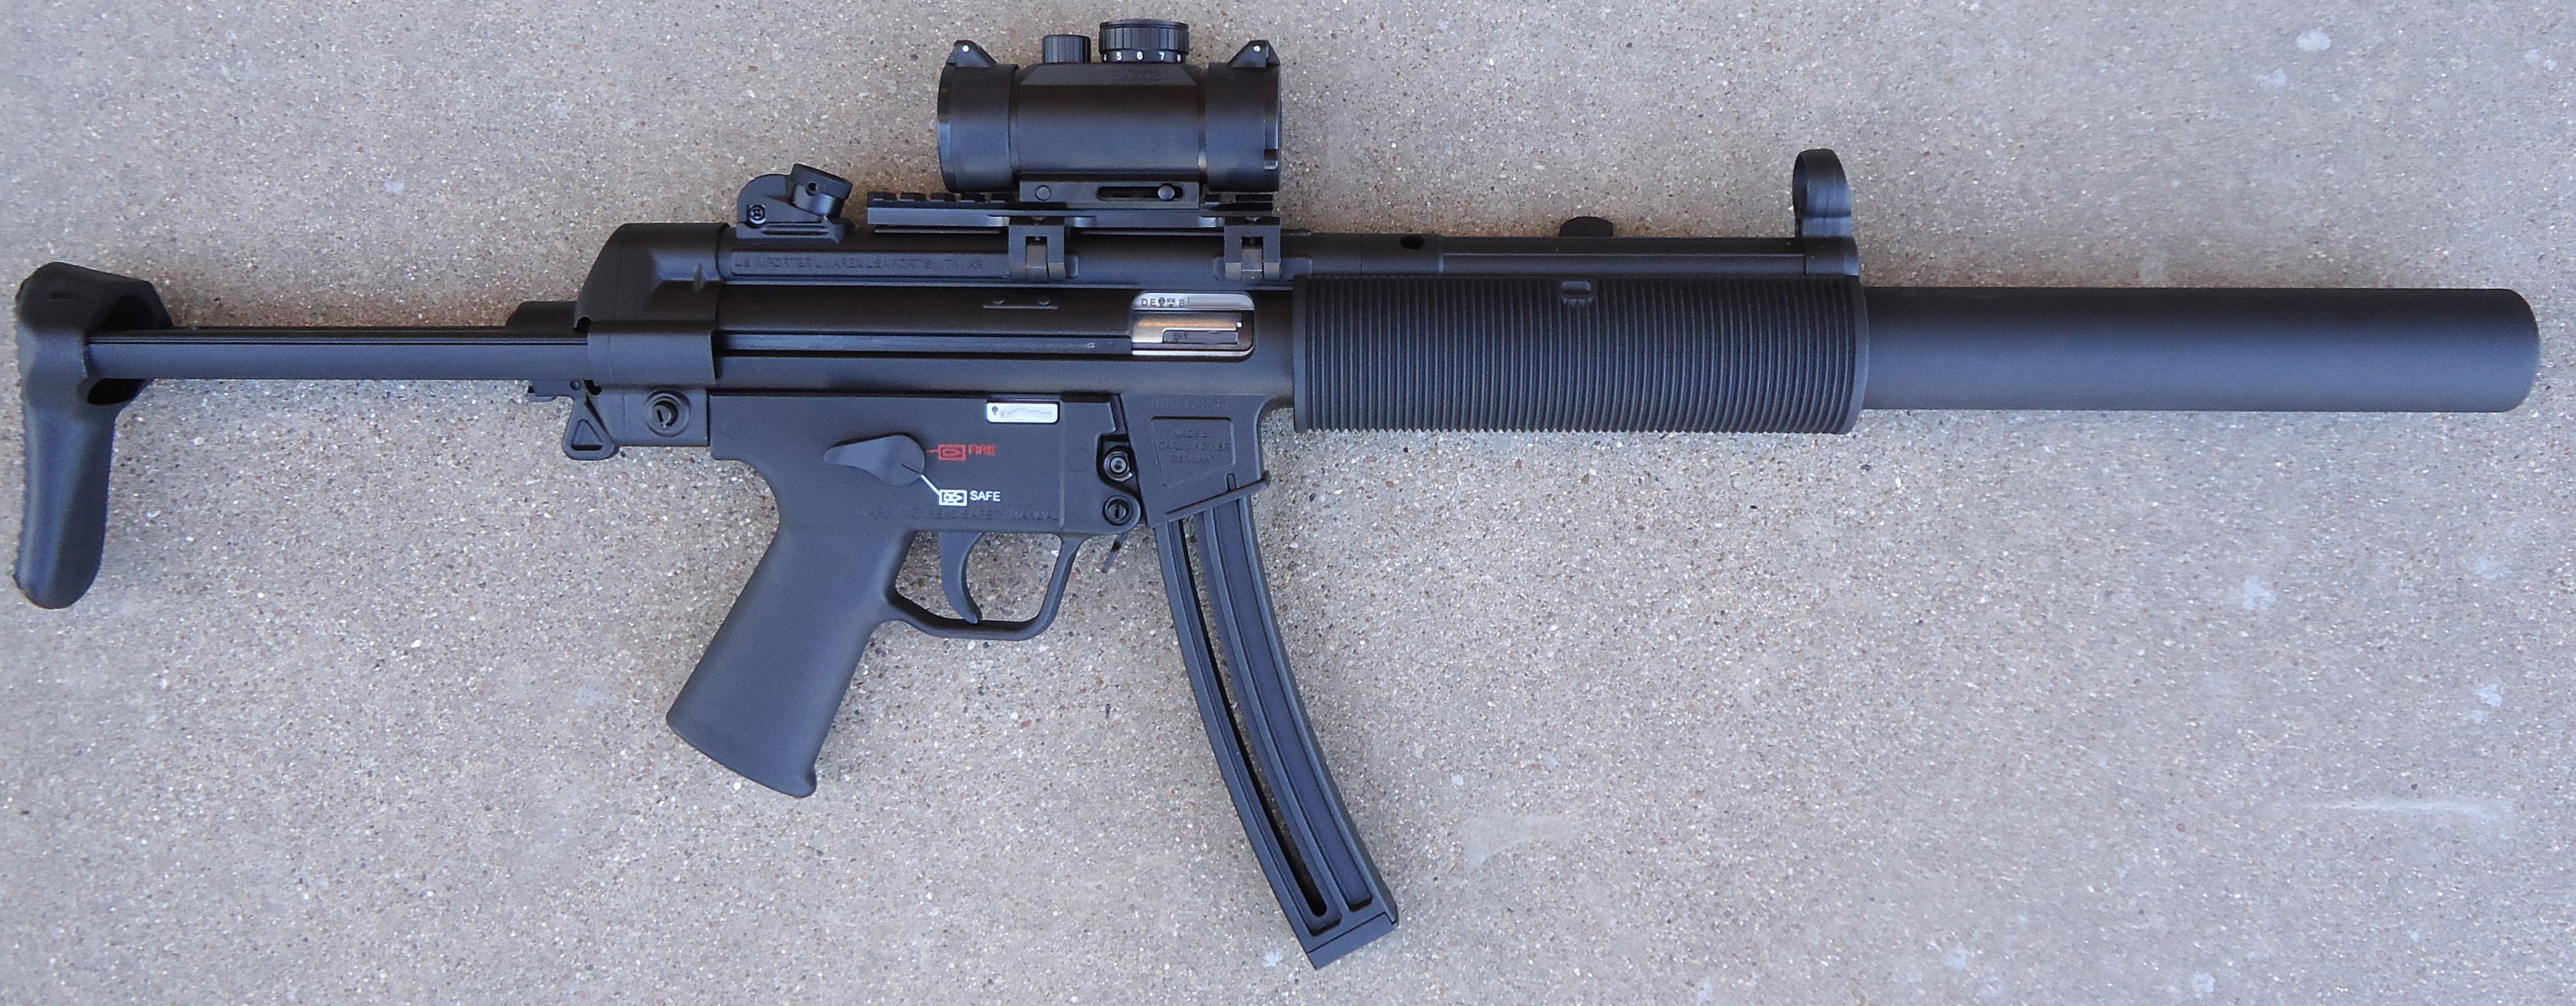 mp5 weapon Gallery